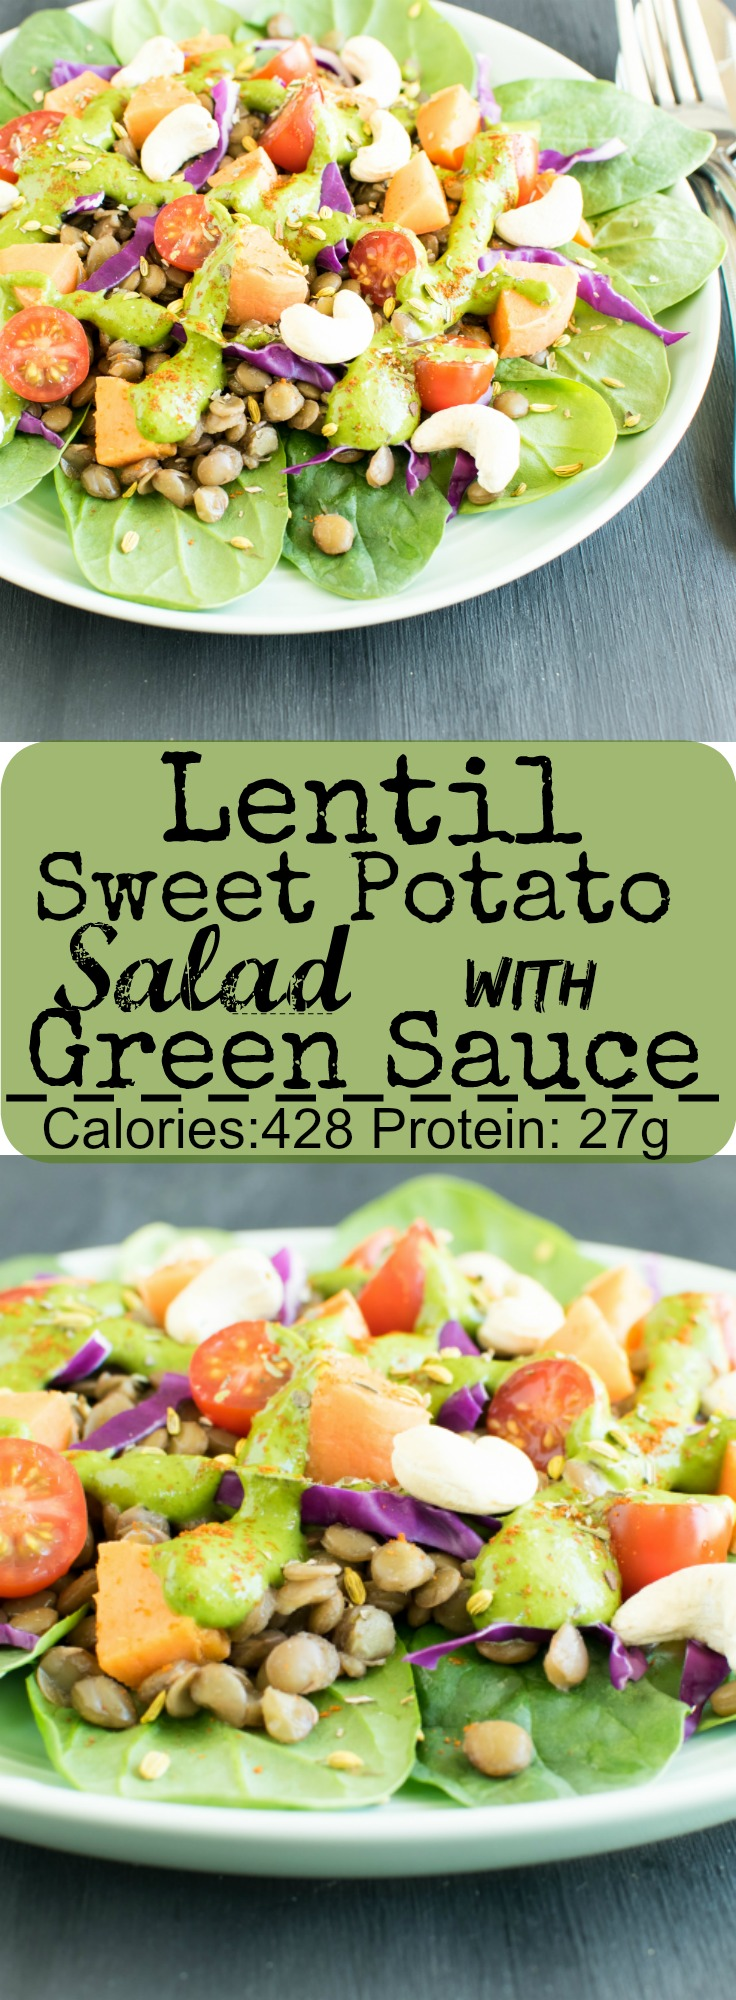 Lentil Sweet Potato Salad with Green Sauce | vegan and gluten free salad with a wholesome combination of protein, complex carbs, good fat, fiber and lots of vitamins and minerals | kiipfit.com